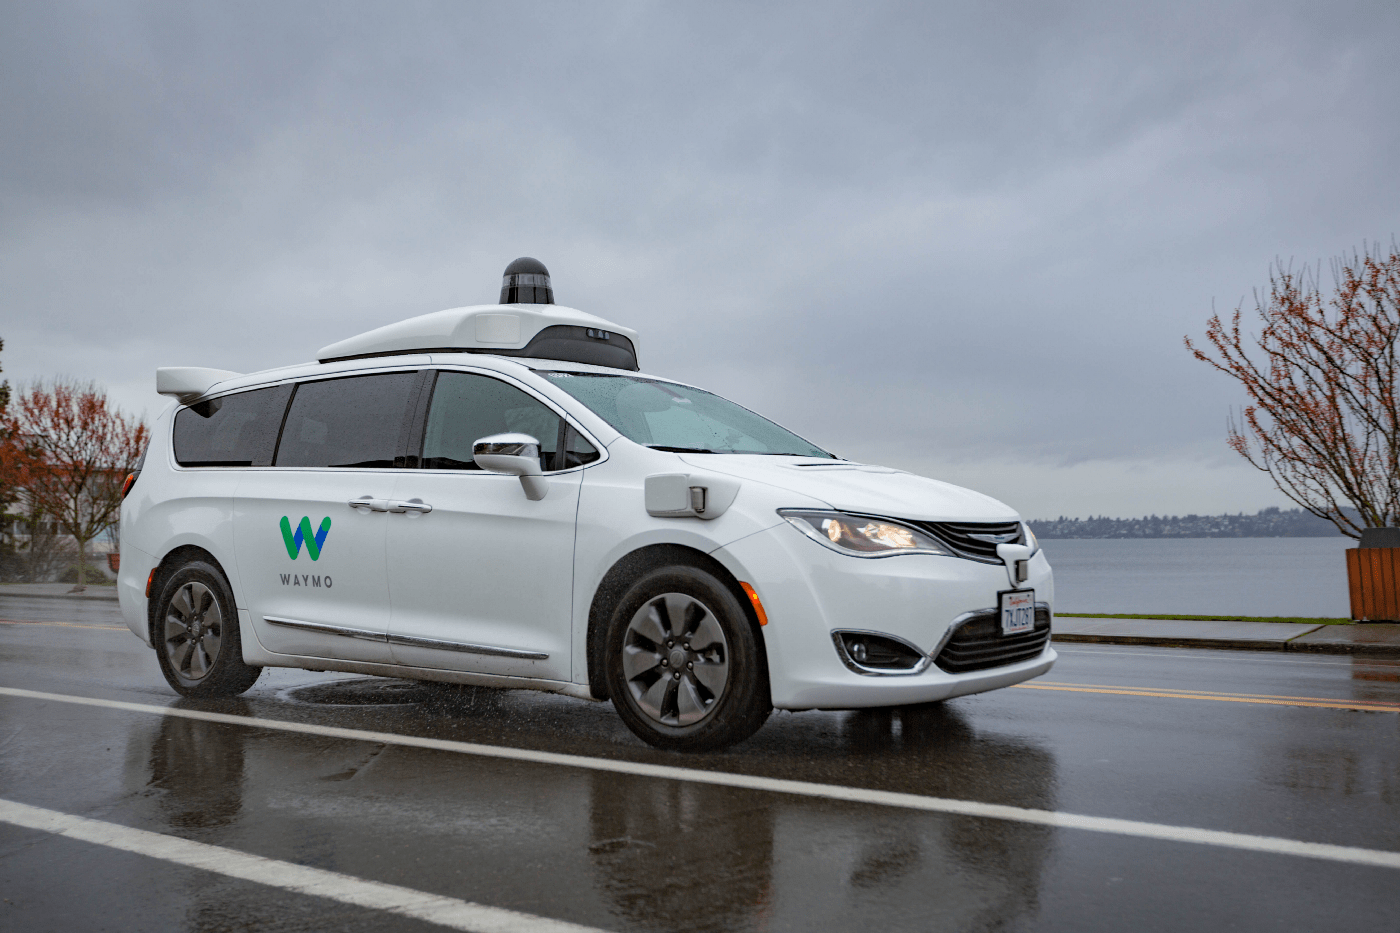 Google driverless car, Car, Self-driving car, Driving, Vehicle, Tesla, Inc., Chrysler Pacifica, Jeep, Waymo, , Self-driving car, Land vehicle, Vehicle, Car, Mid-size car, Automotive design, Family car, Full-size car, Infrastructure, Hatchback, Luxury vehicle